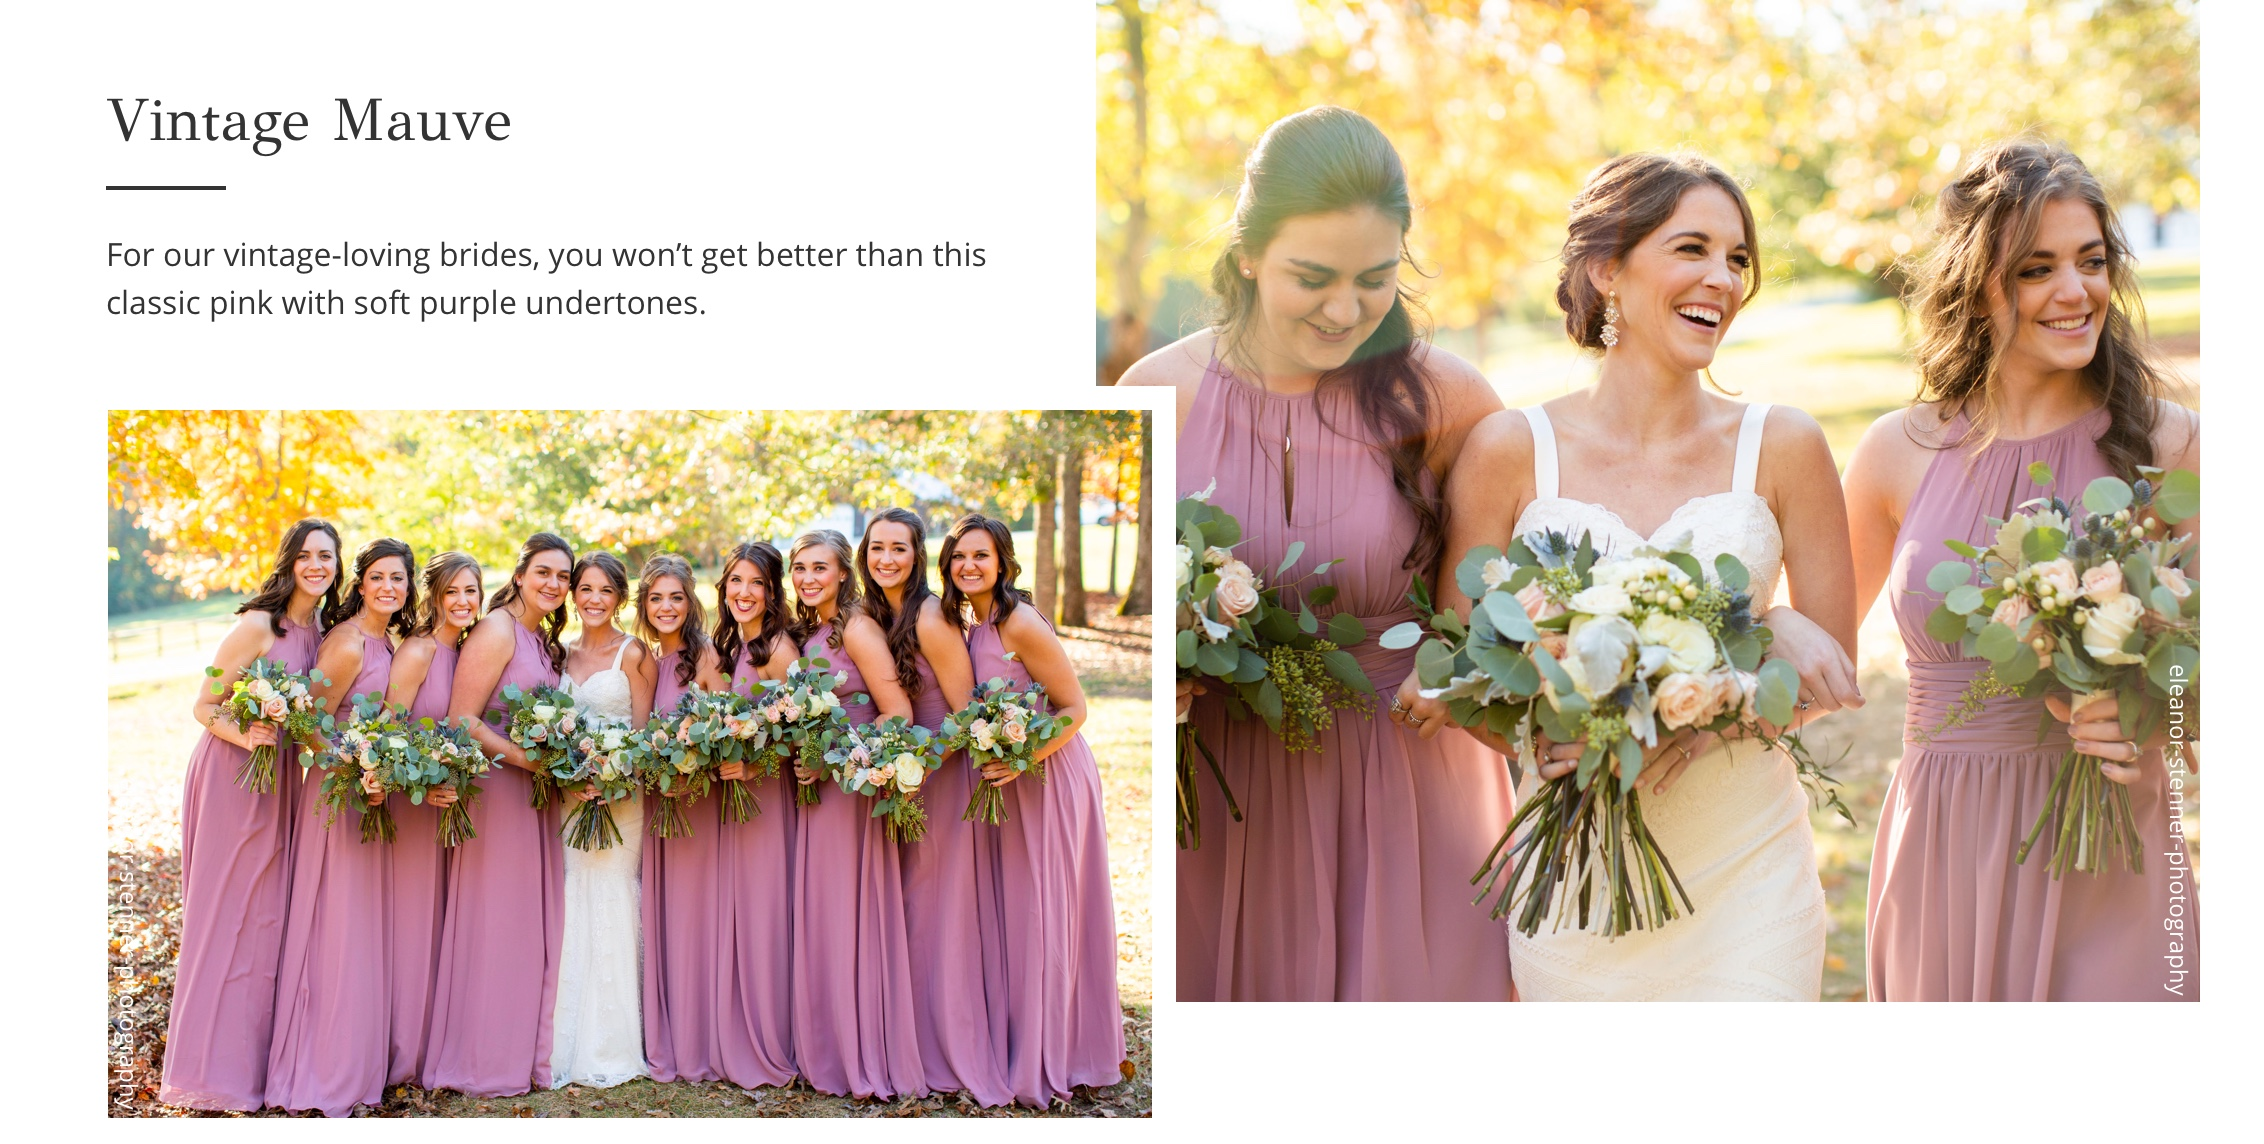 Vintage Mauve Bridesmaid Dresses